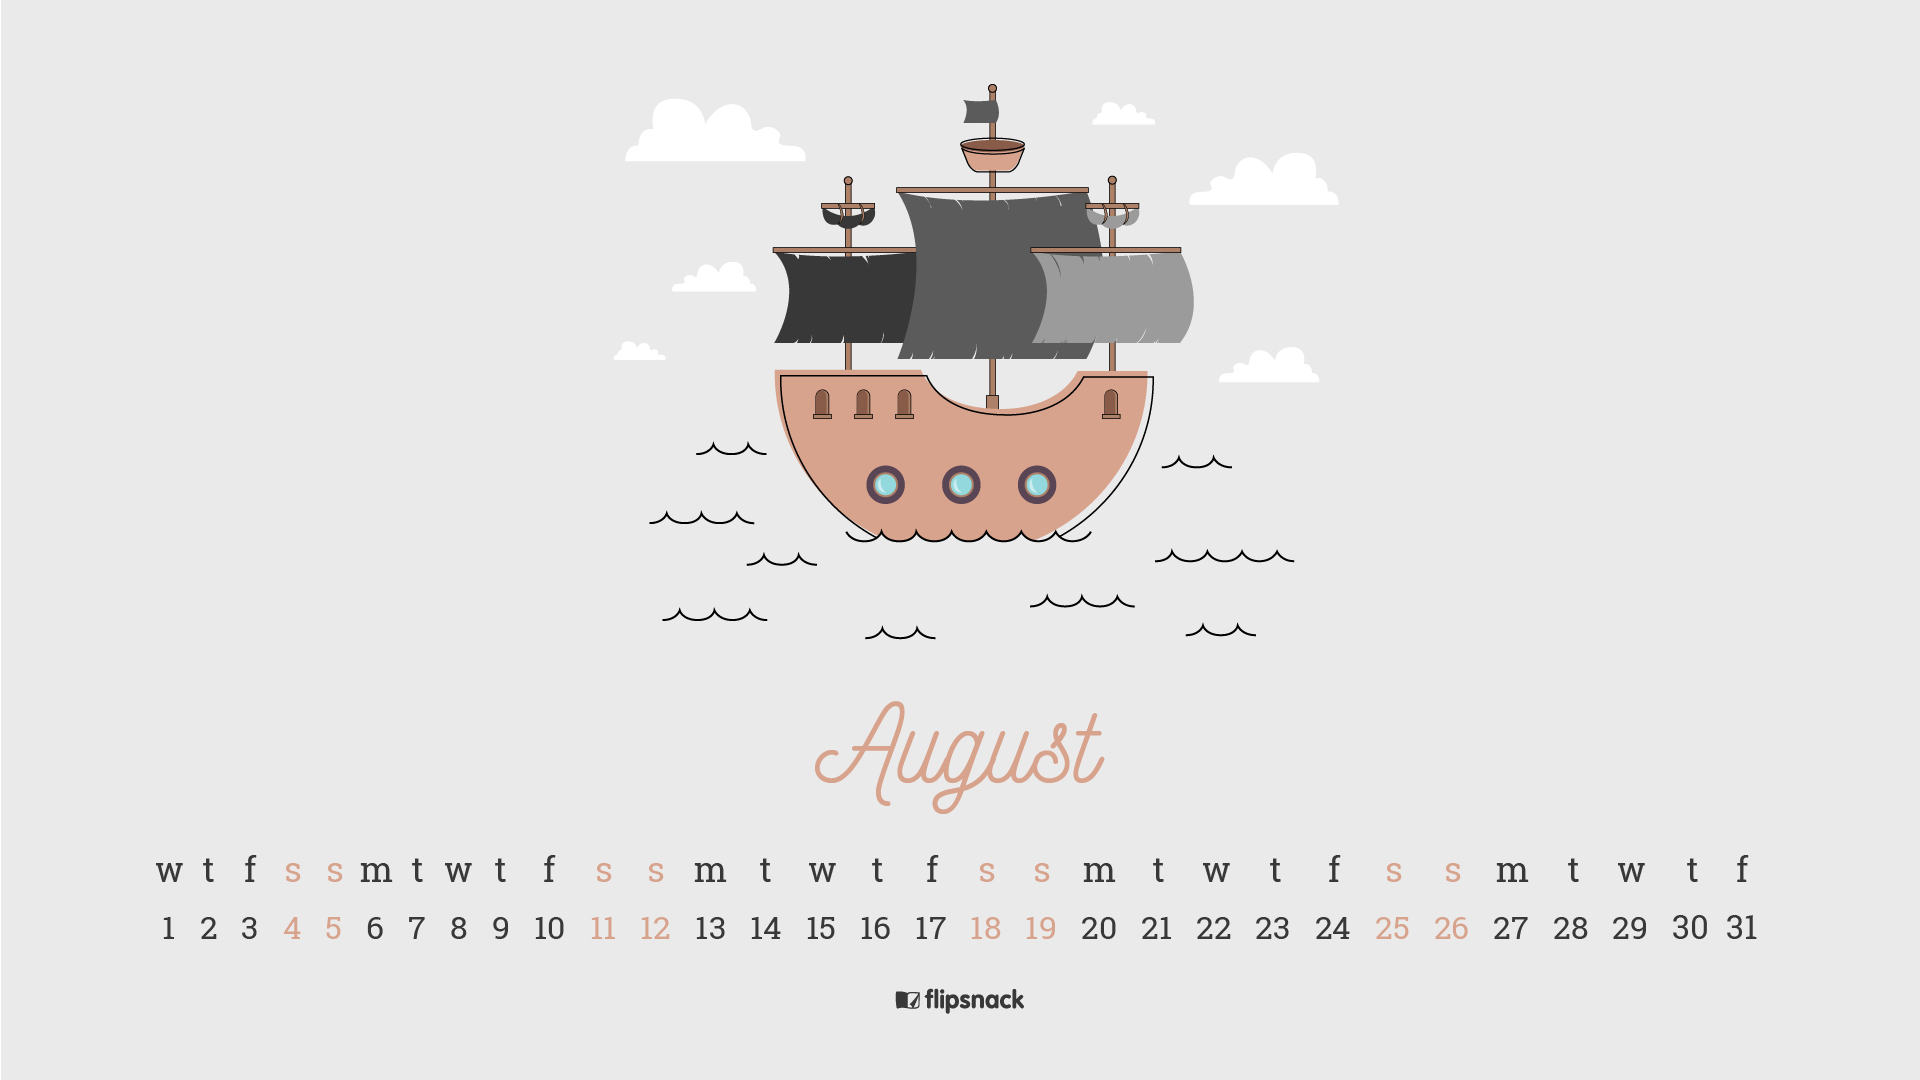 august 2018 calendar 2 download calendar